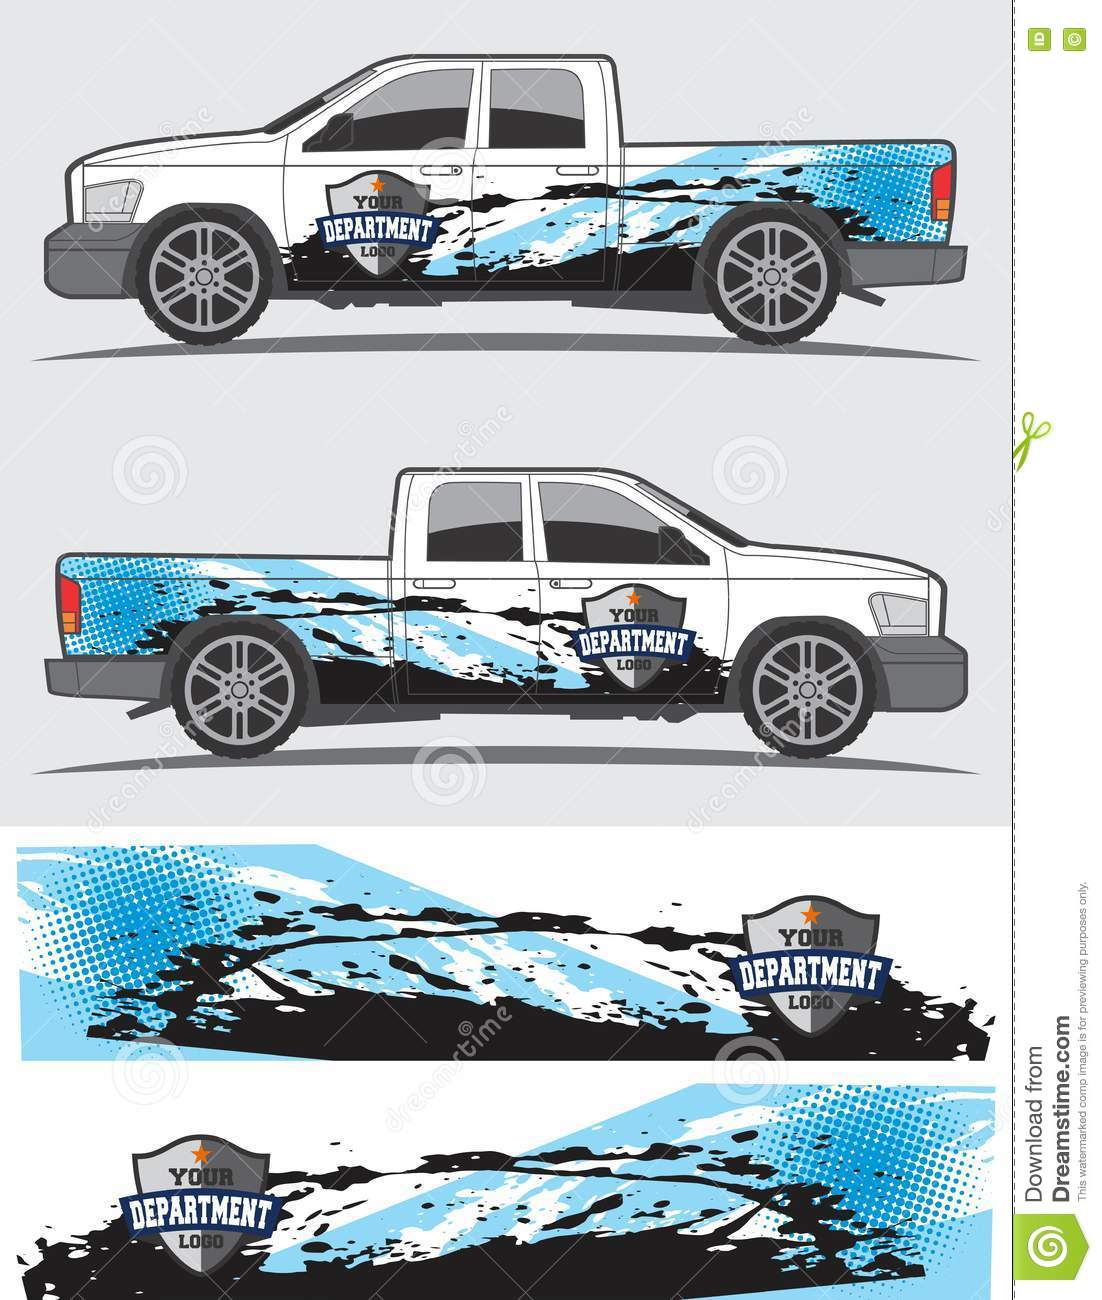 Car Sticker Design Download - Truck and vehicle decal graphic design stock illustration